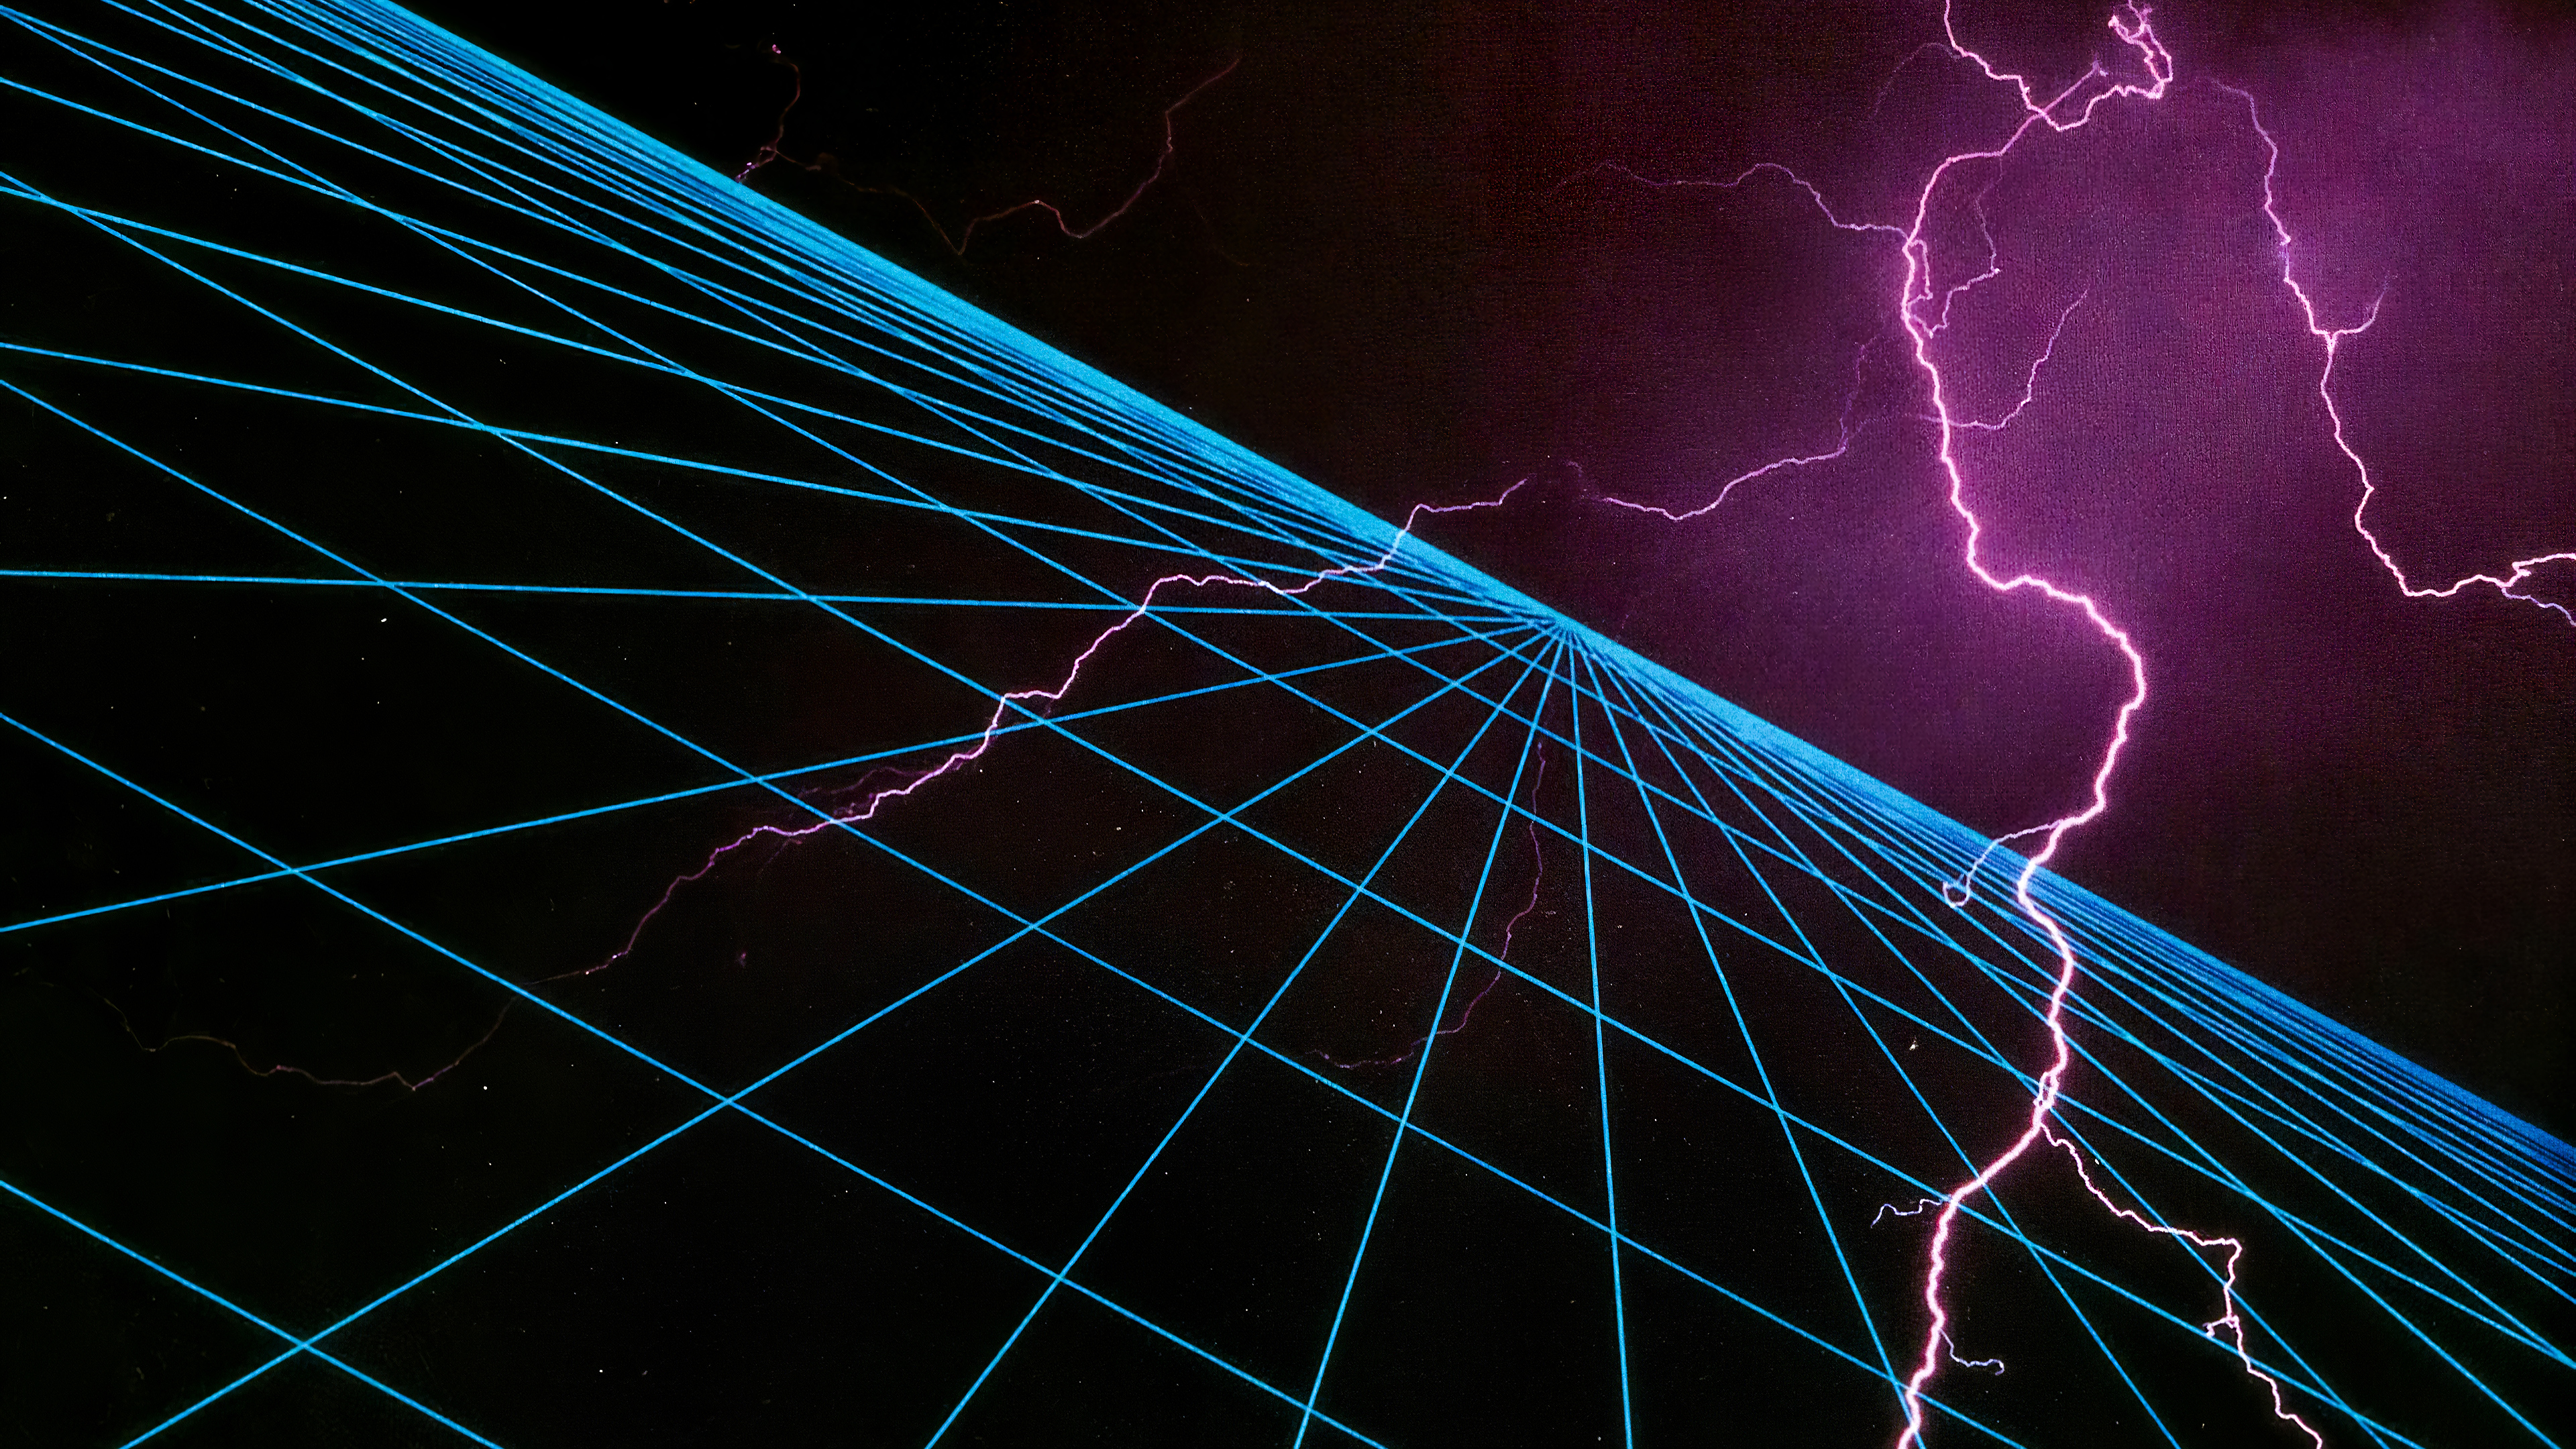 grid light abstract 1570394910 - Grid Light Abstract - retrowave wallpapers, hd-wallpapers, grid wallpapers, digital art wallpapers, abstract wallpapers, 4k-wallpapers